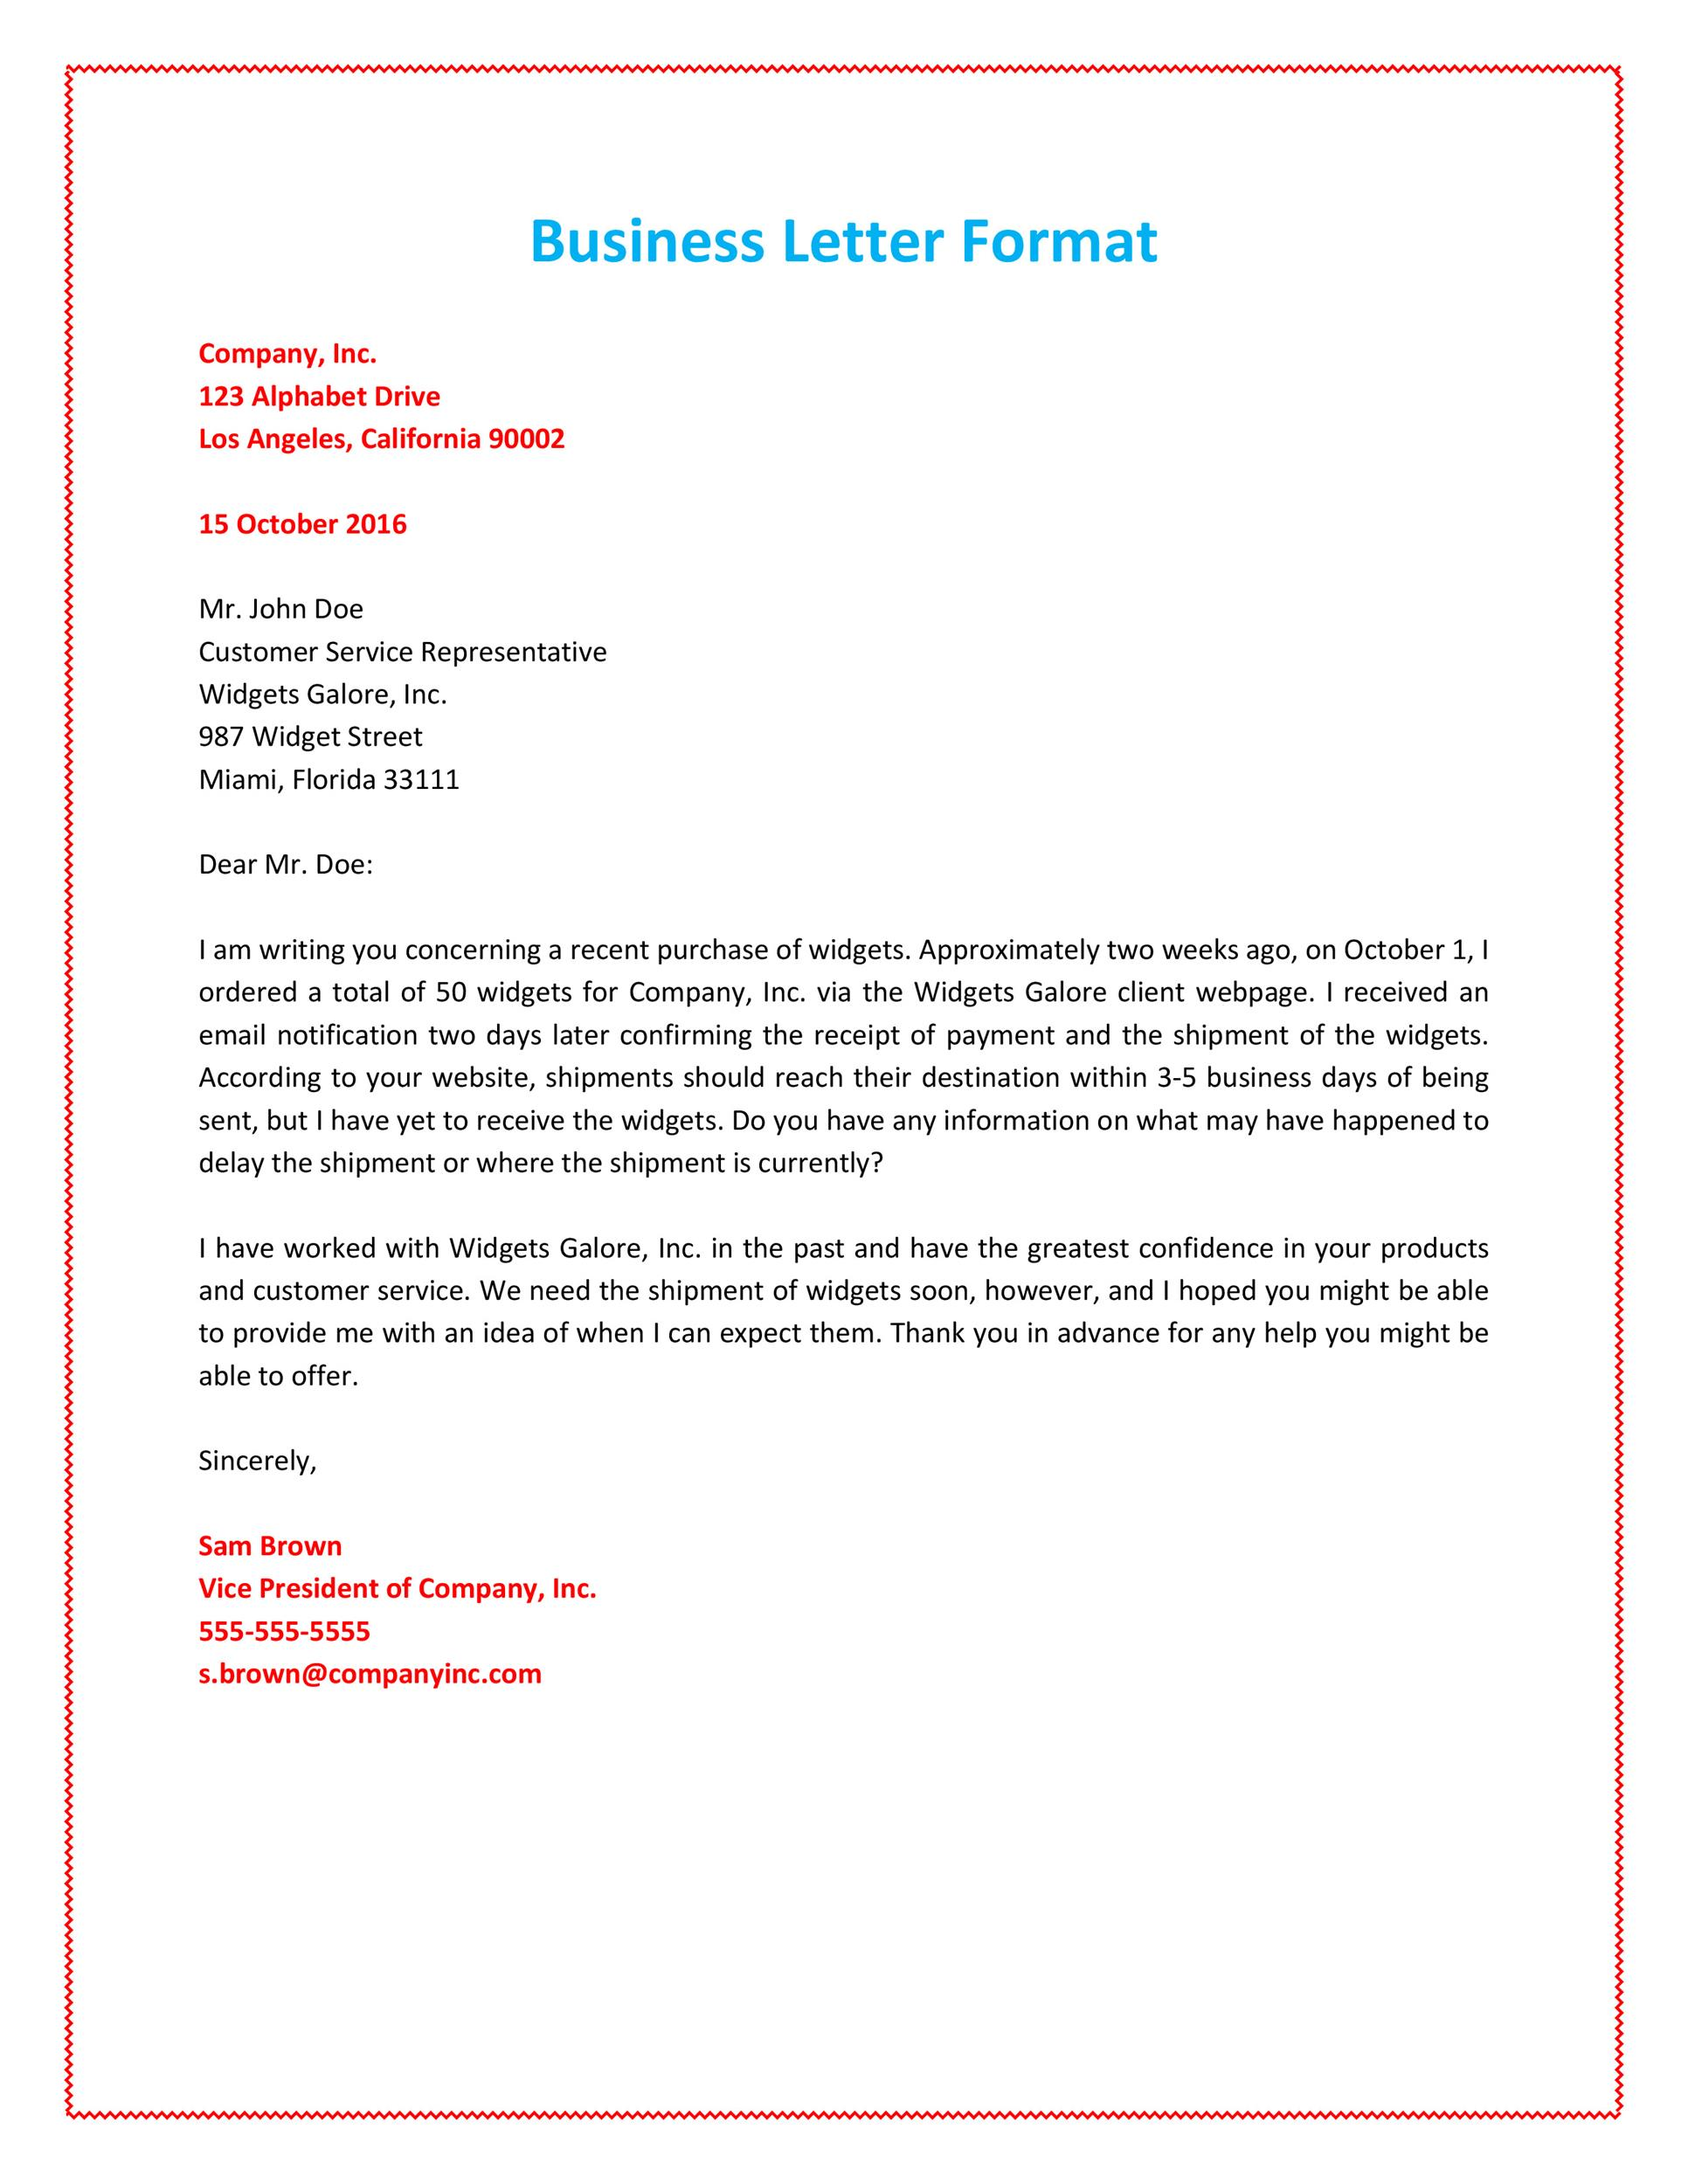 Buisness letter ukrandiffusion 35 formal business letter format templates examples template lab friedricerecipe Gallery